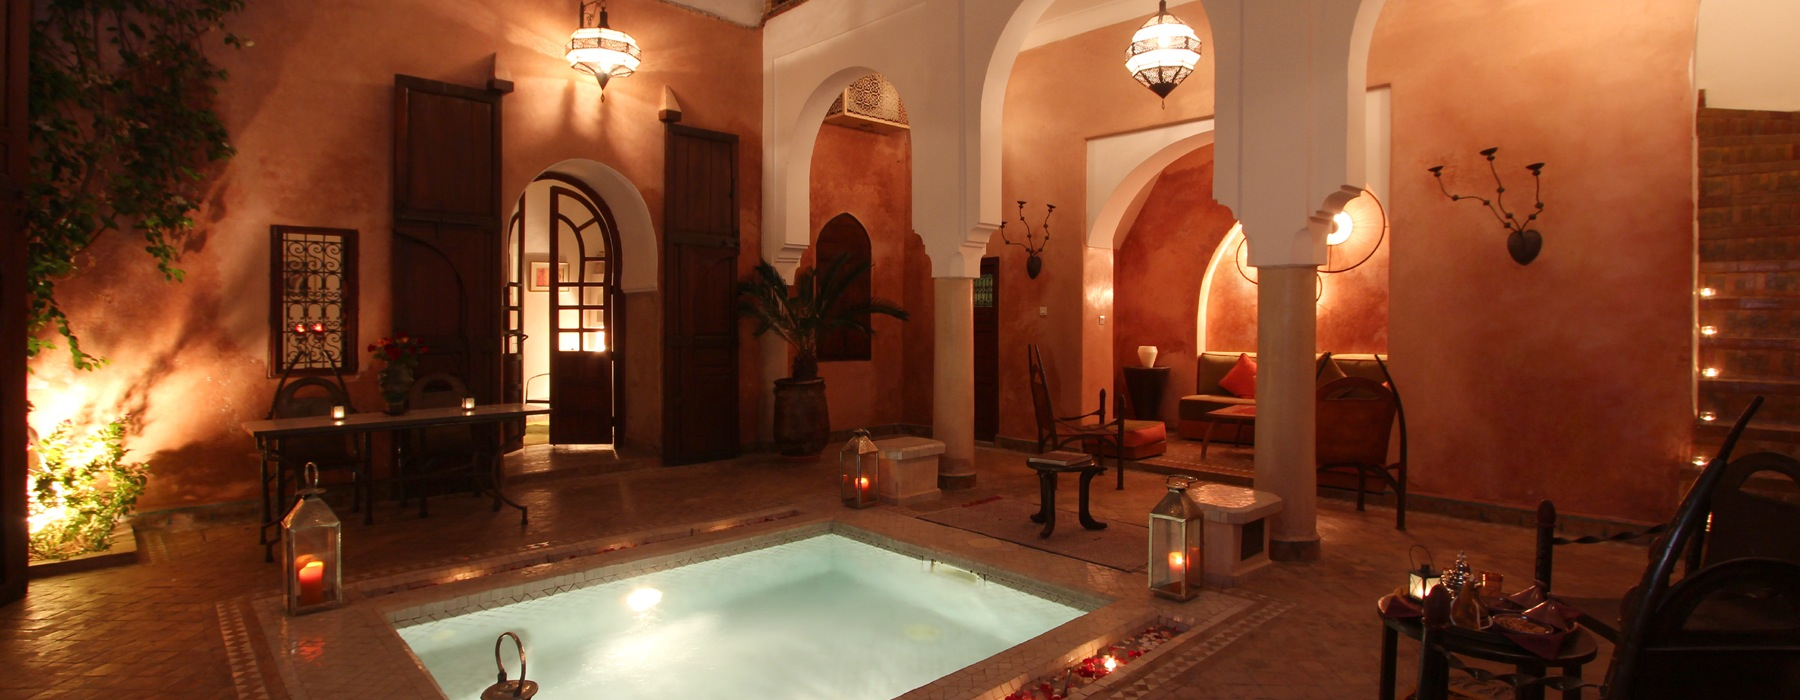 Riad Dar Warda Hotel Marrakech, Marrakesch, Luxushotel Marokko Marrakesch Riad Hotel Marokko, hotel luxe Maroc Marrakech, Riad Hotel Maroc hôtel de luxe Marrakech, luxe Marrakech Riad Hôtel Maroc, luxury Hotel Morocco Riad Hotel Marrakech, Riad Dar Warda Marrakech, Luxury Hotel Morocco<br><br>Luxury Hotels Worldwide 5 Star Hotels and Five Star Resorts<br><br>The images displayed on websites of DLW Luxury Hotels Worldwide - Hotelreservations Worldwide are owned by DLW Hotels or third parties and are therefore the property of DLW Hotels or others.